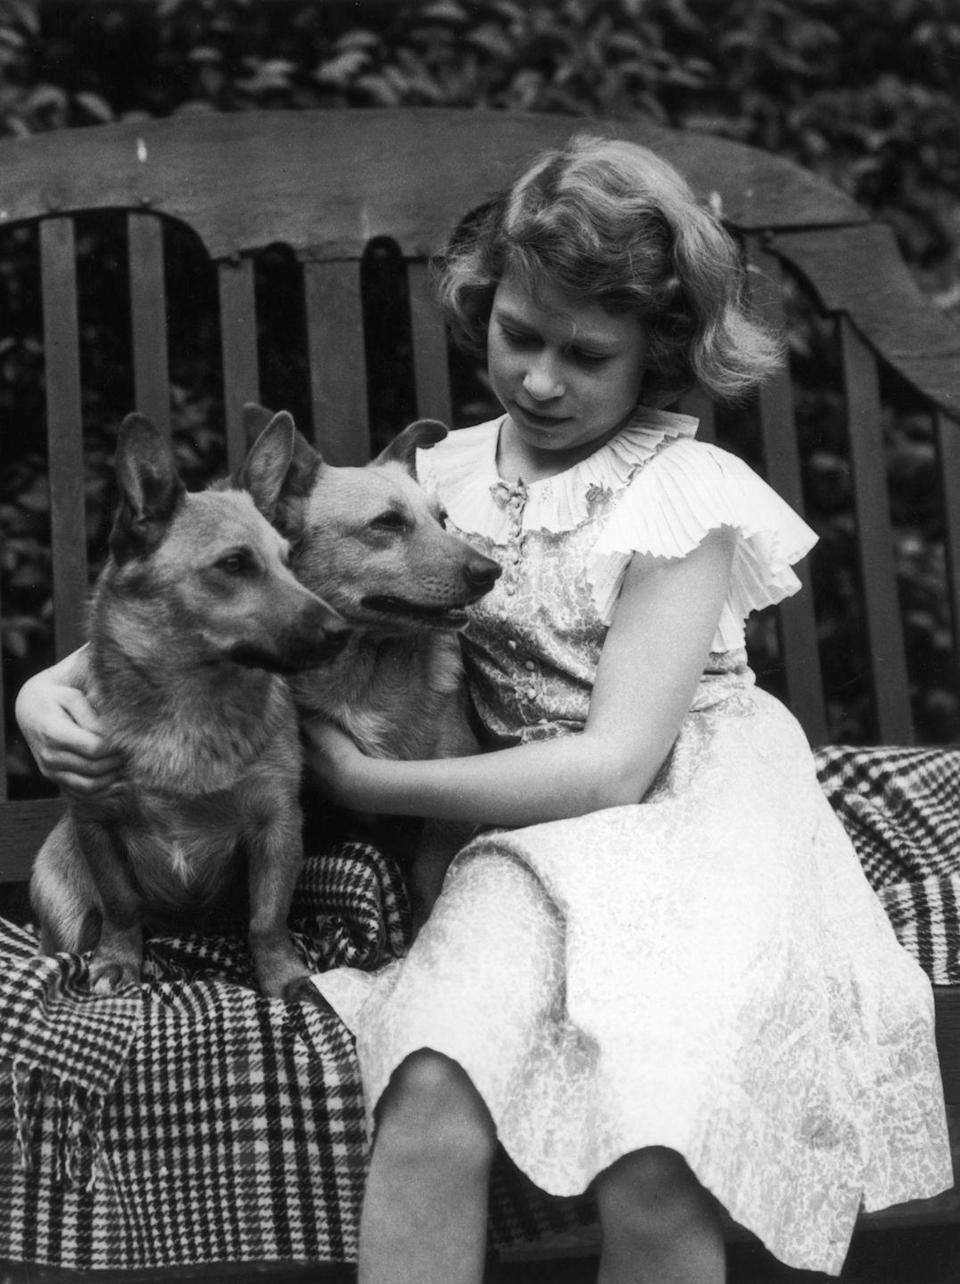 """<p>Queen Elizabeth has adored Corgis ever since she was a little girl, so much so that the royal was known to <a href=""""https://www.romper.com/p/why-does-queen-elizabeth-ii-like-corgis-theyve-been-in-the-family-for-nearly-80-years-9275552"""" rel=""""nofollow noopener"""" target=""""_blank"""" data-ylk=""""slk:breed them at Buckingham Palace"""" class=""""link rapid-noclick-resp"""">breed them at Buckingham Palace</a>. Here, the young princess is seen with two of her family pets, Jane and Dookie. </p>"""